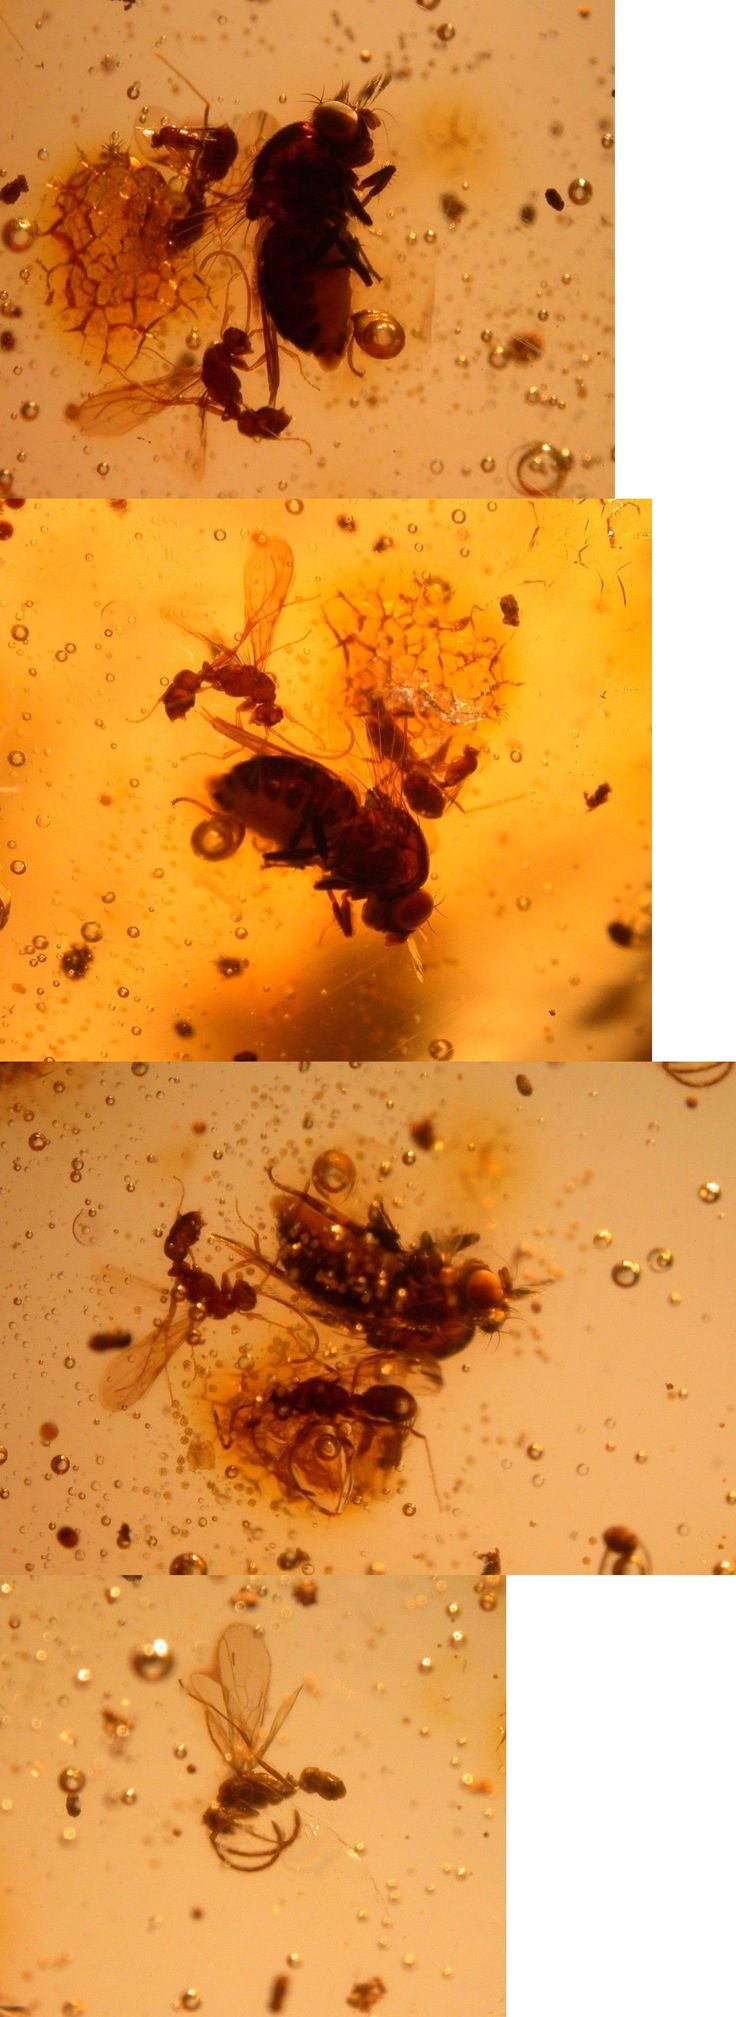 Amber 10191: Rare Acalyptrate Fly, 4 Winged Ants, Strange Bubbles In Colombian Copal Amber BUY IT NOW ONLY: $45.0